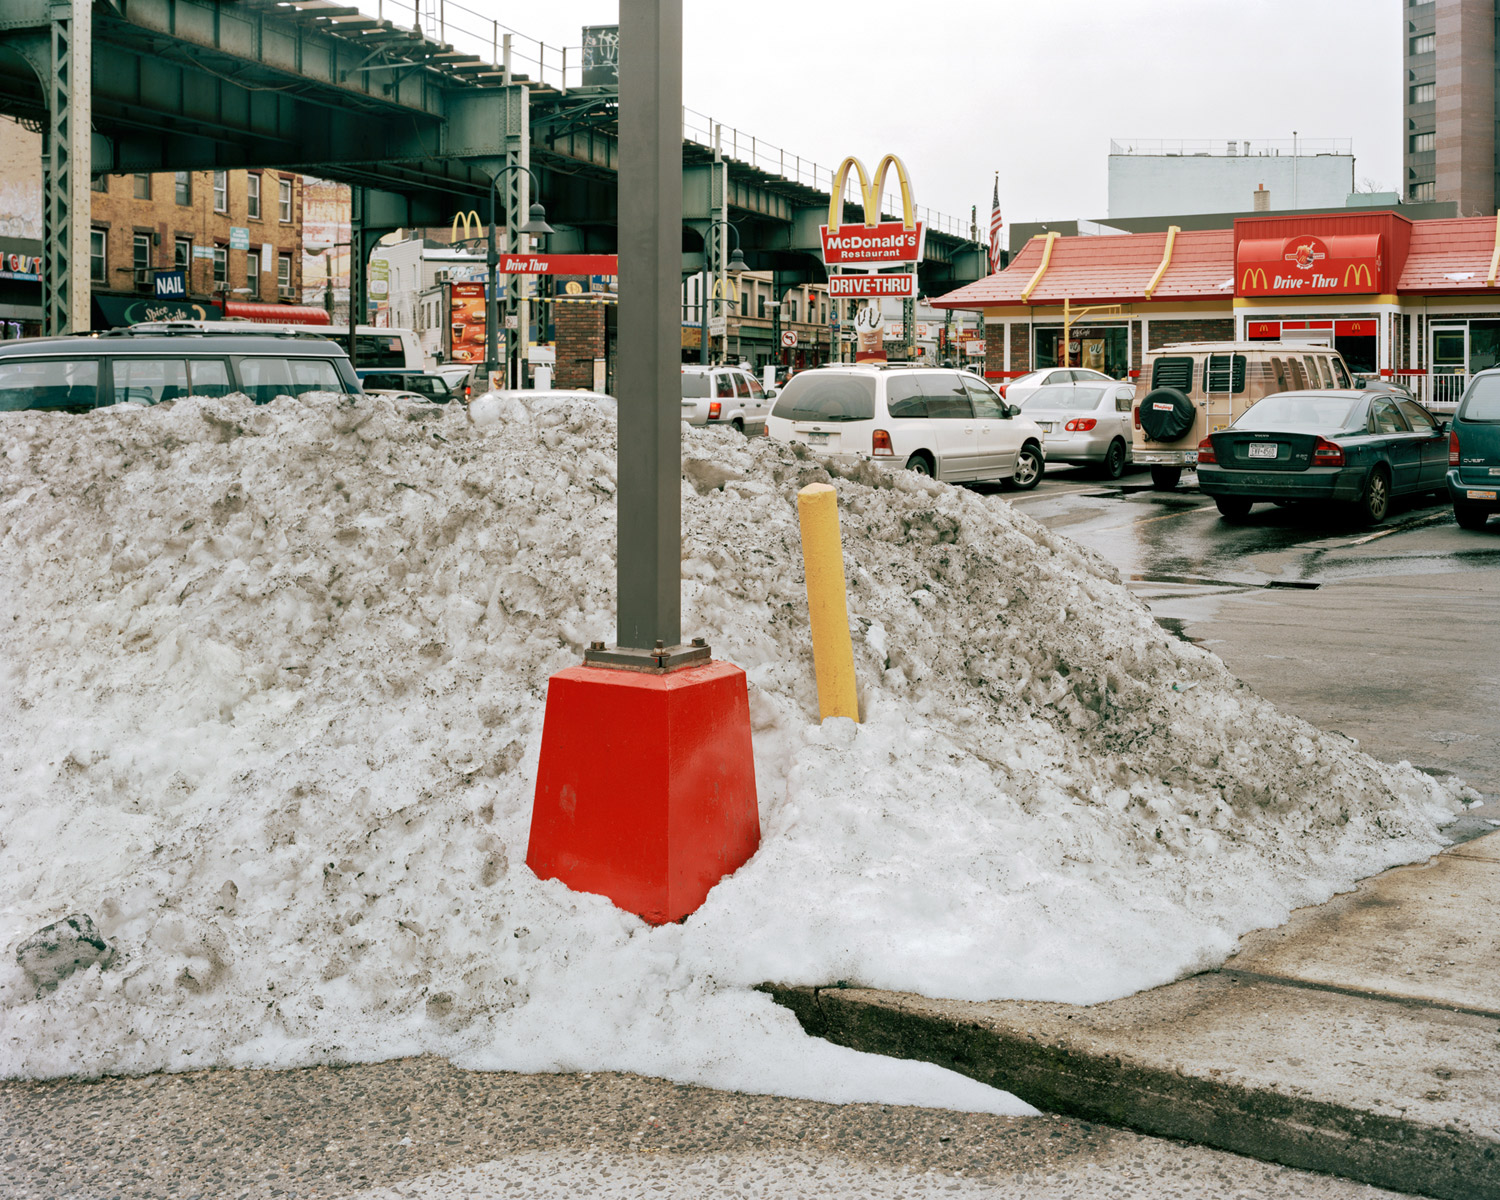 Snow Pile In McDonald's Parking Lot Looking Northeast From Whipple Street & Broadway, Brooklyn, 2010